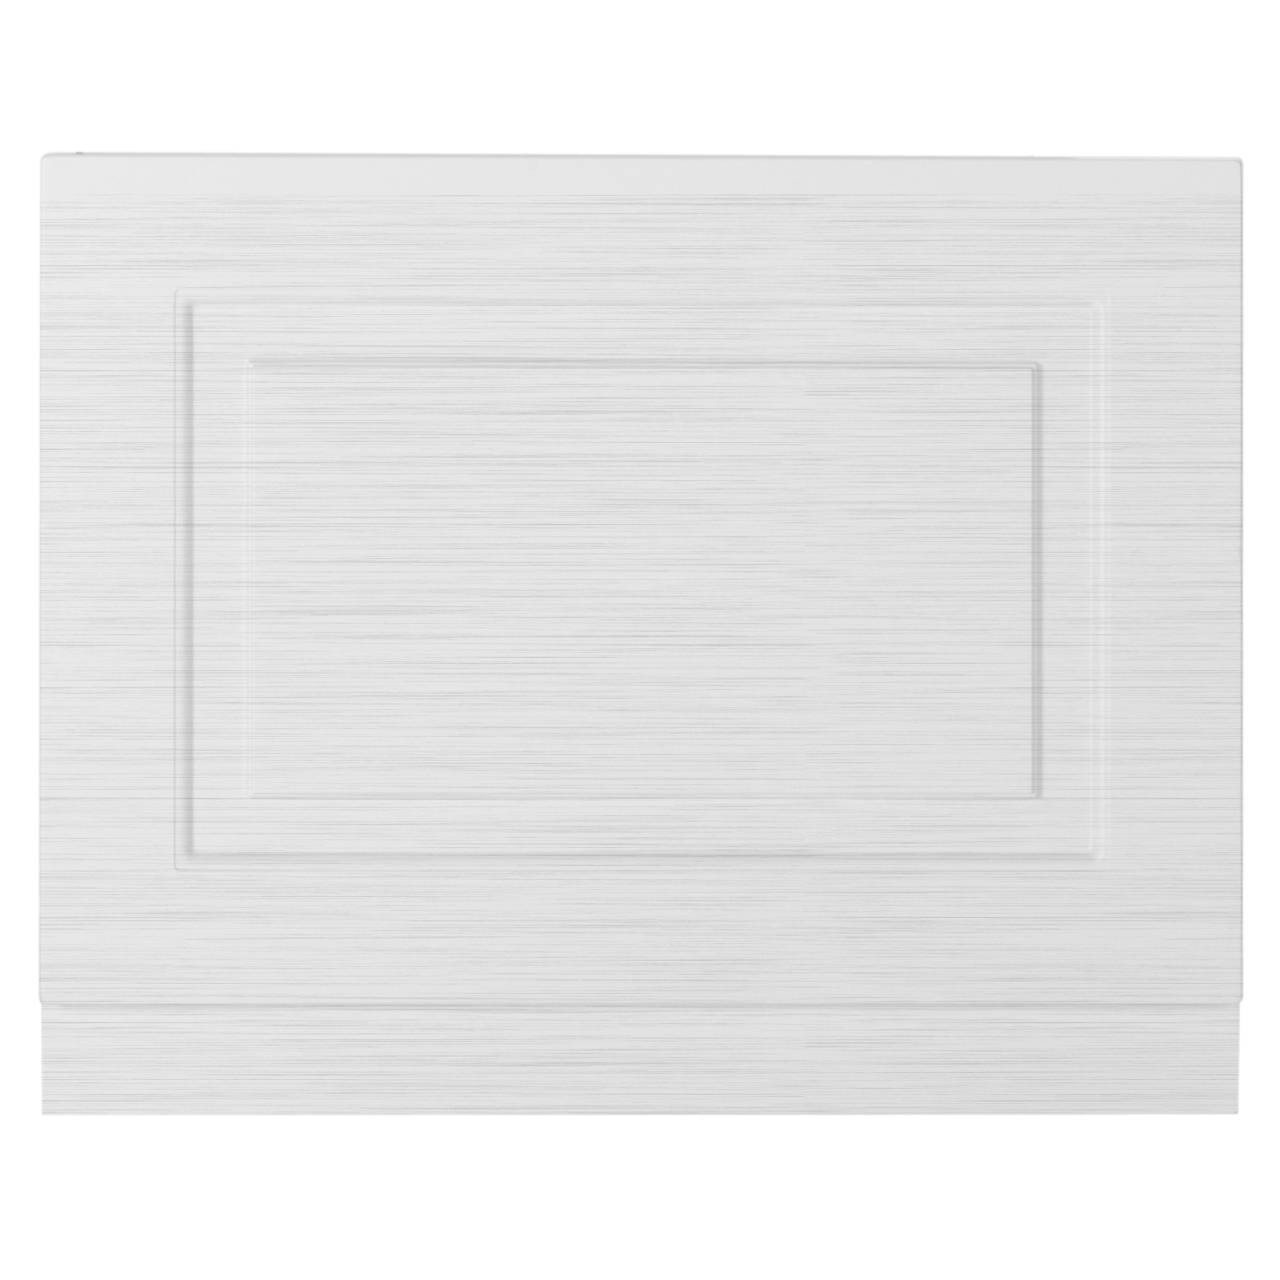 Premier York White Ash 700mm Bath End Panel 480/100 - OLP111